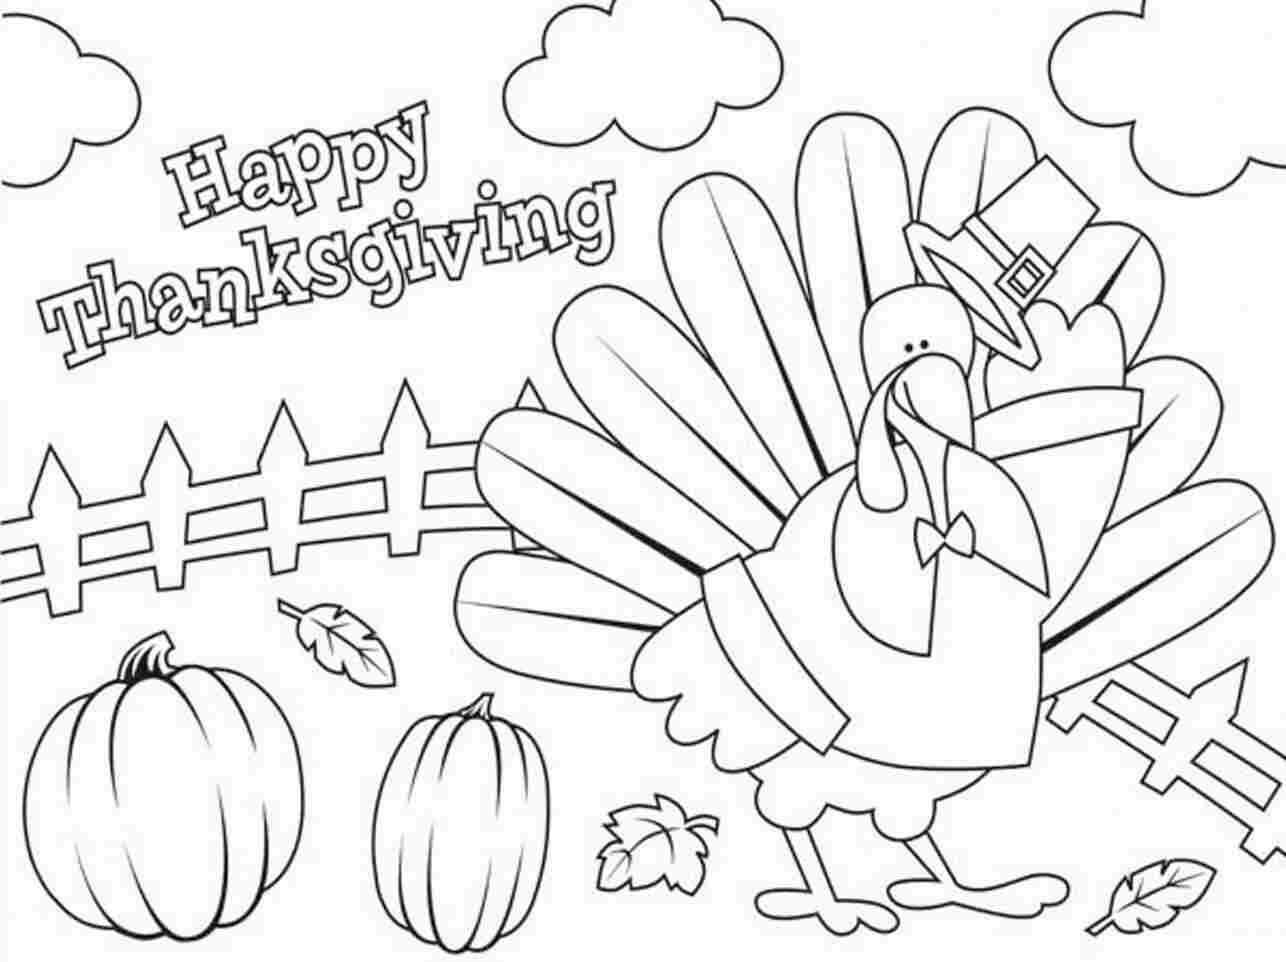 Printable Happy Thanksgiving Coloring Pages Free Download For Kids Turkey Coloring Pages Thanksgiving Coloring Pages Thanksgiving Coloring Sheets